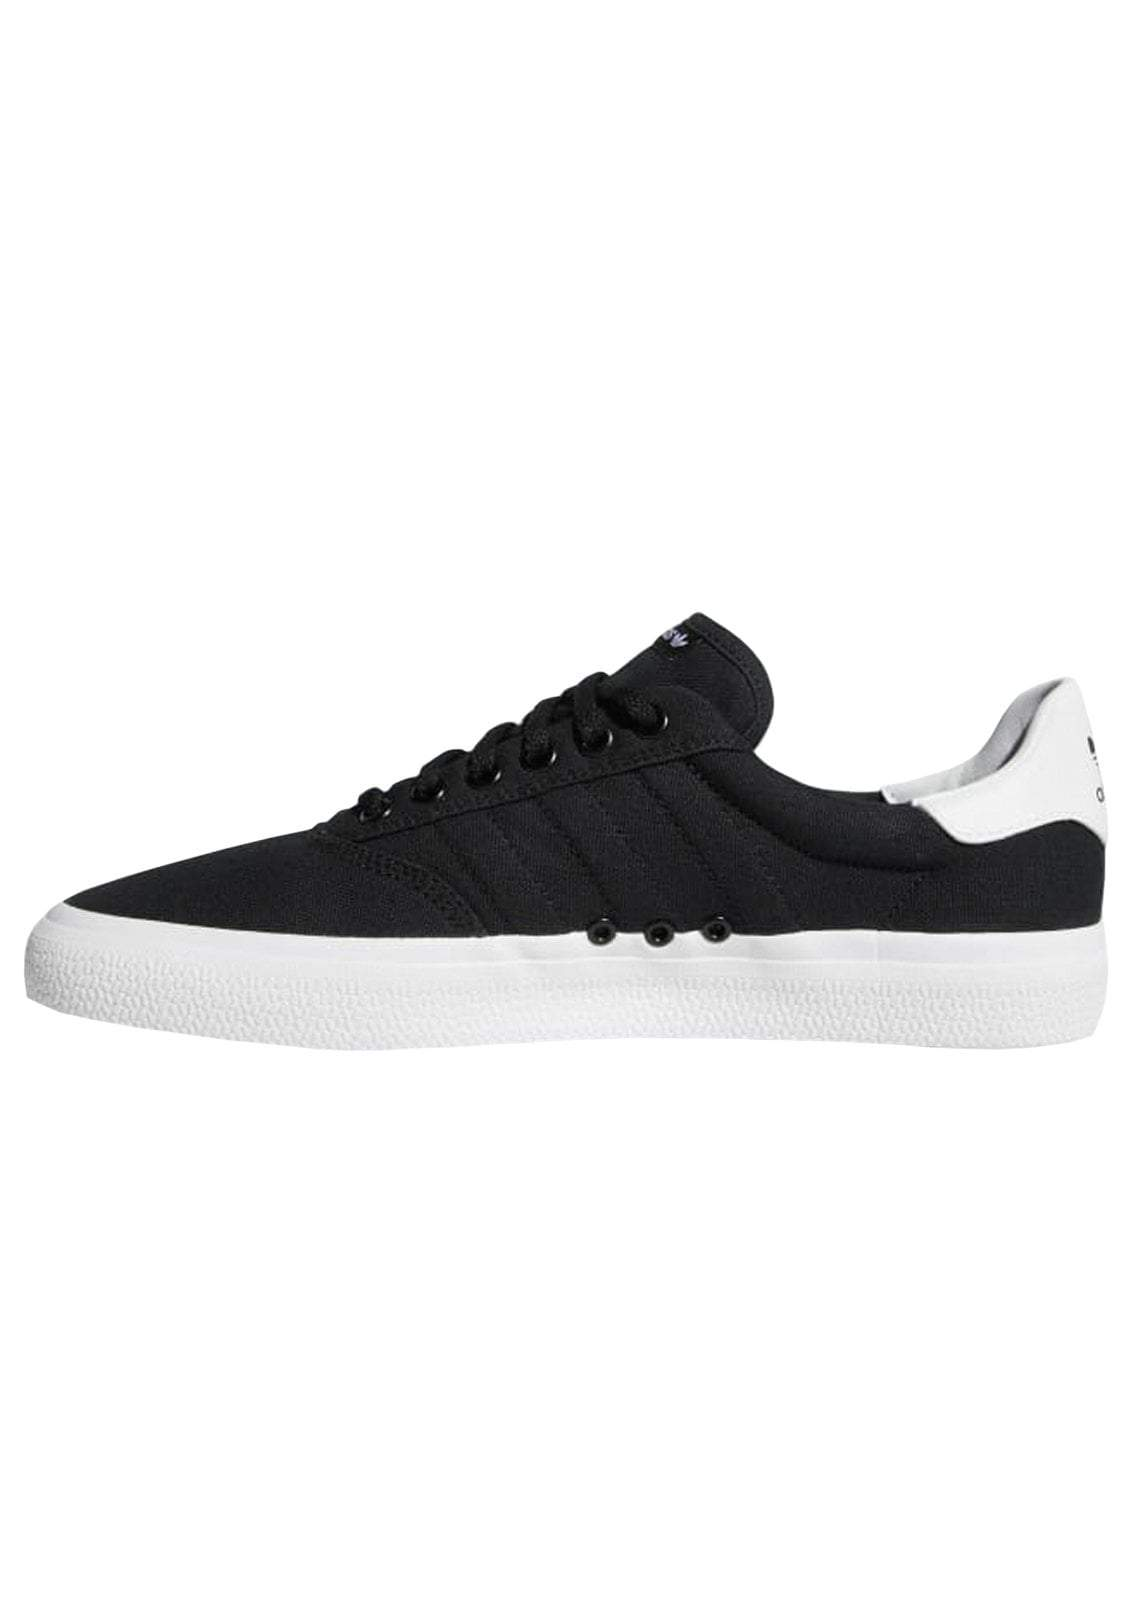 57c06538d9059b Adidas 3MC Vulc Shoes · Adidas 3MC Vulc Shoes ...